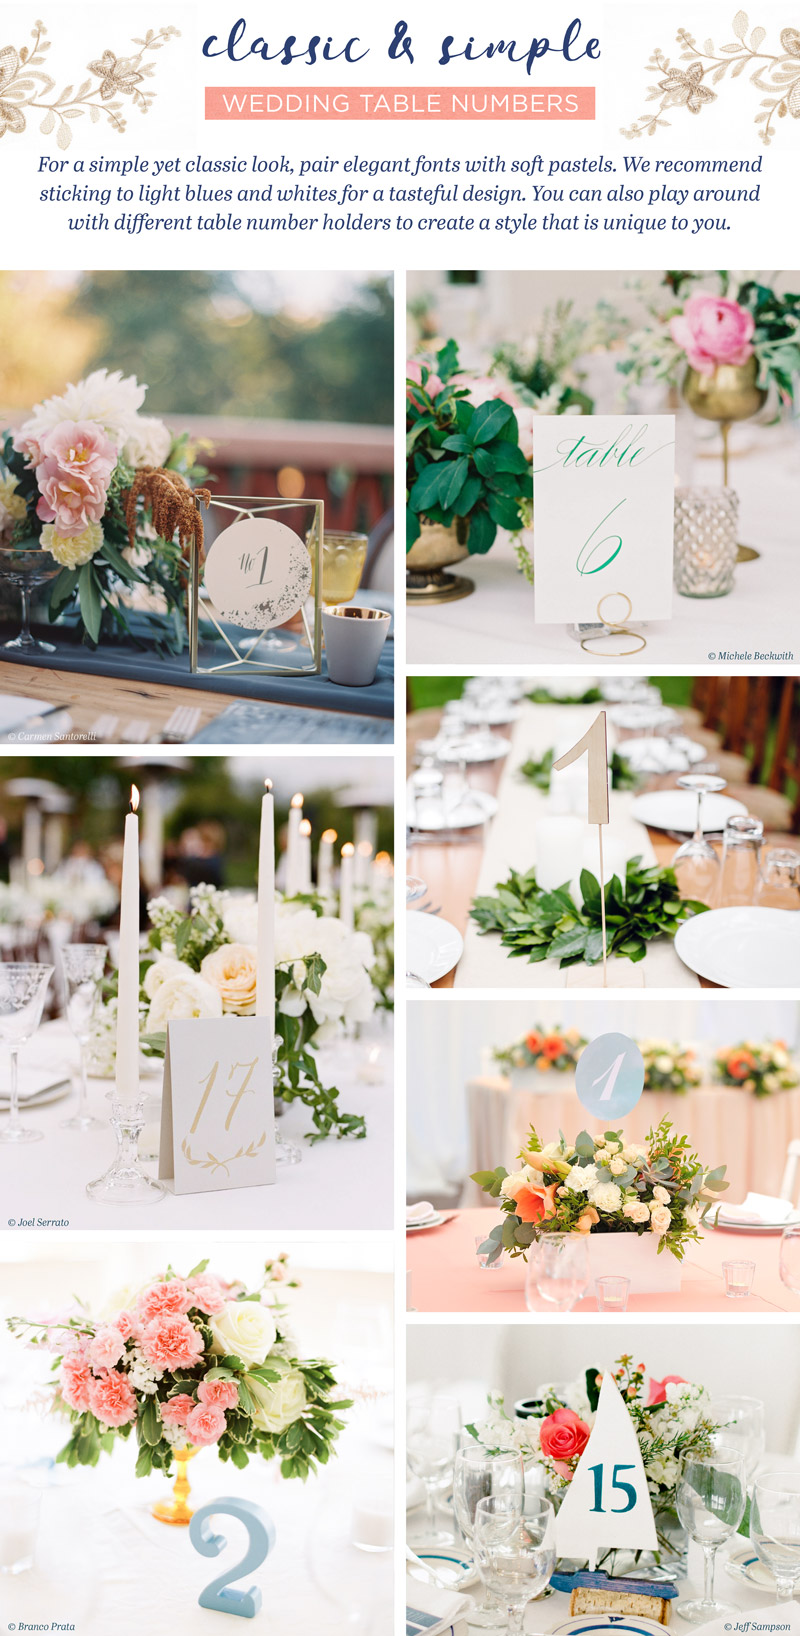 classic wedding table number ideas